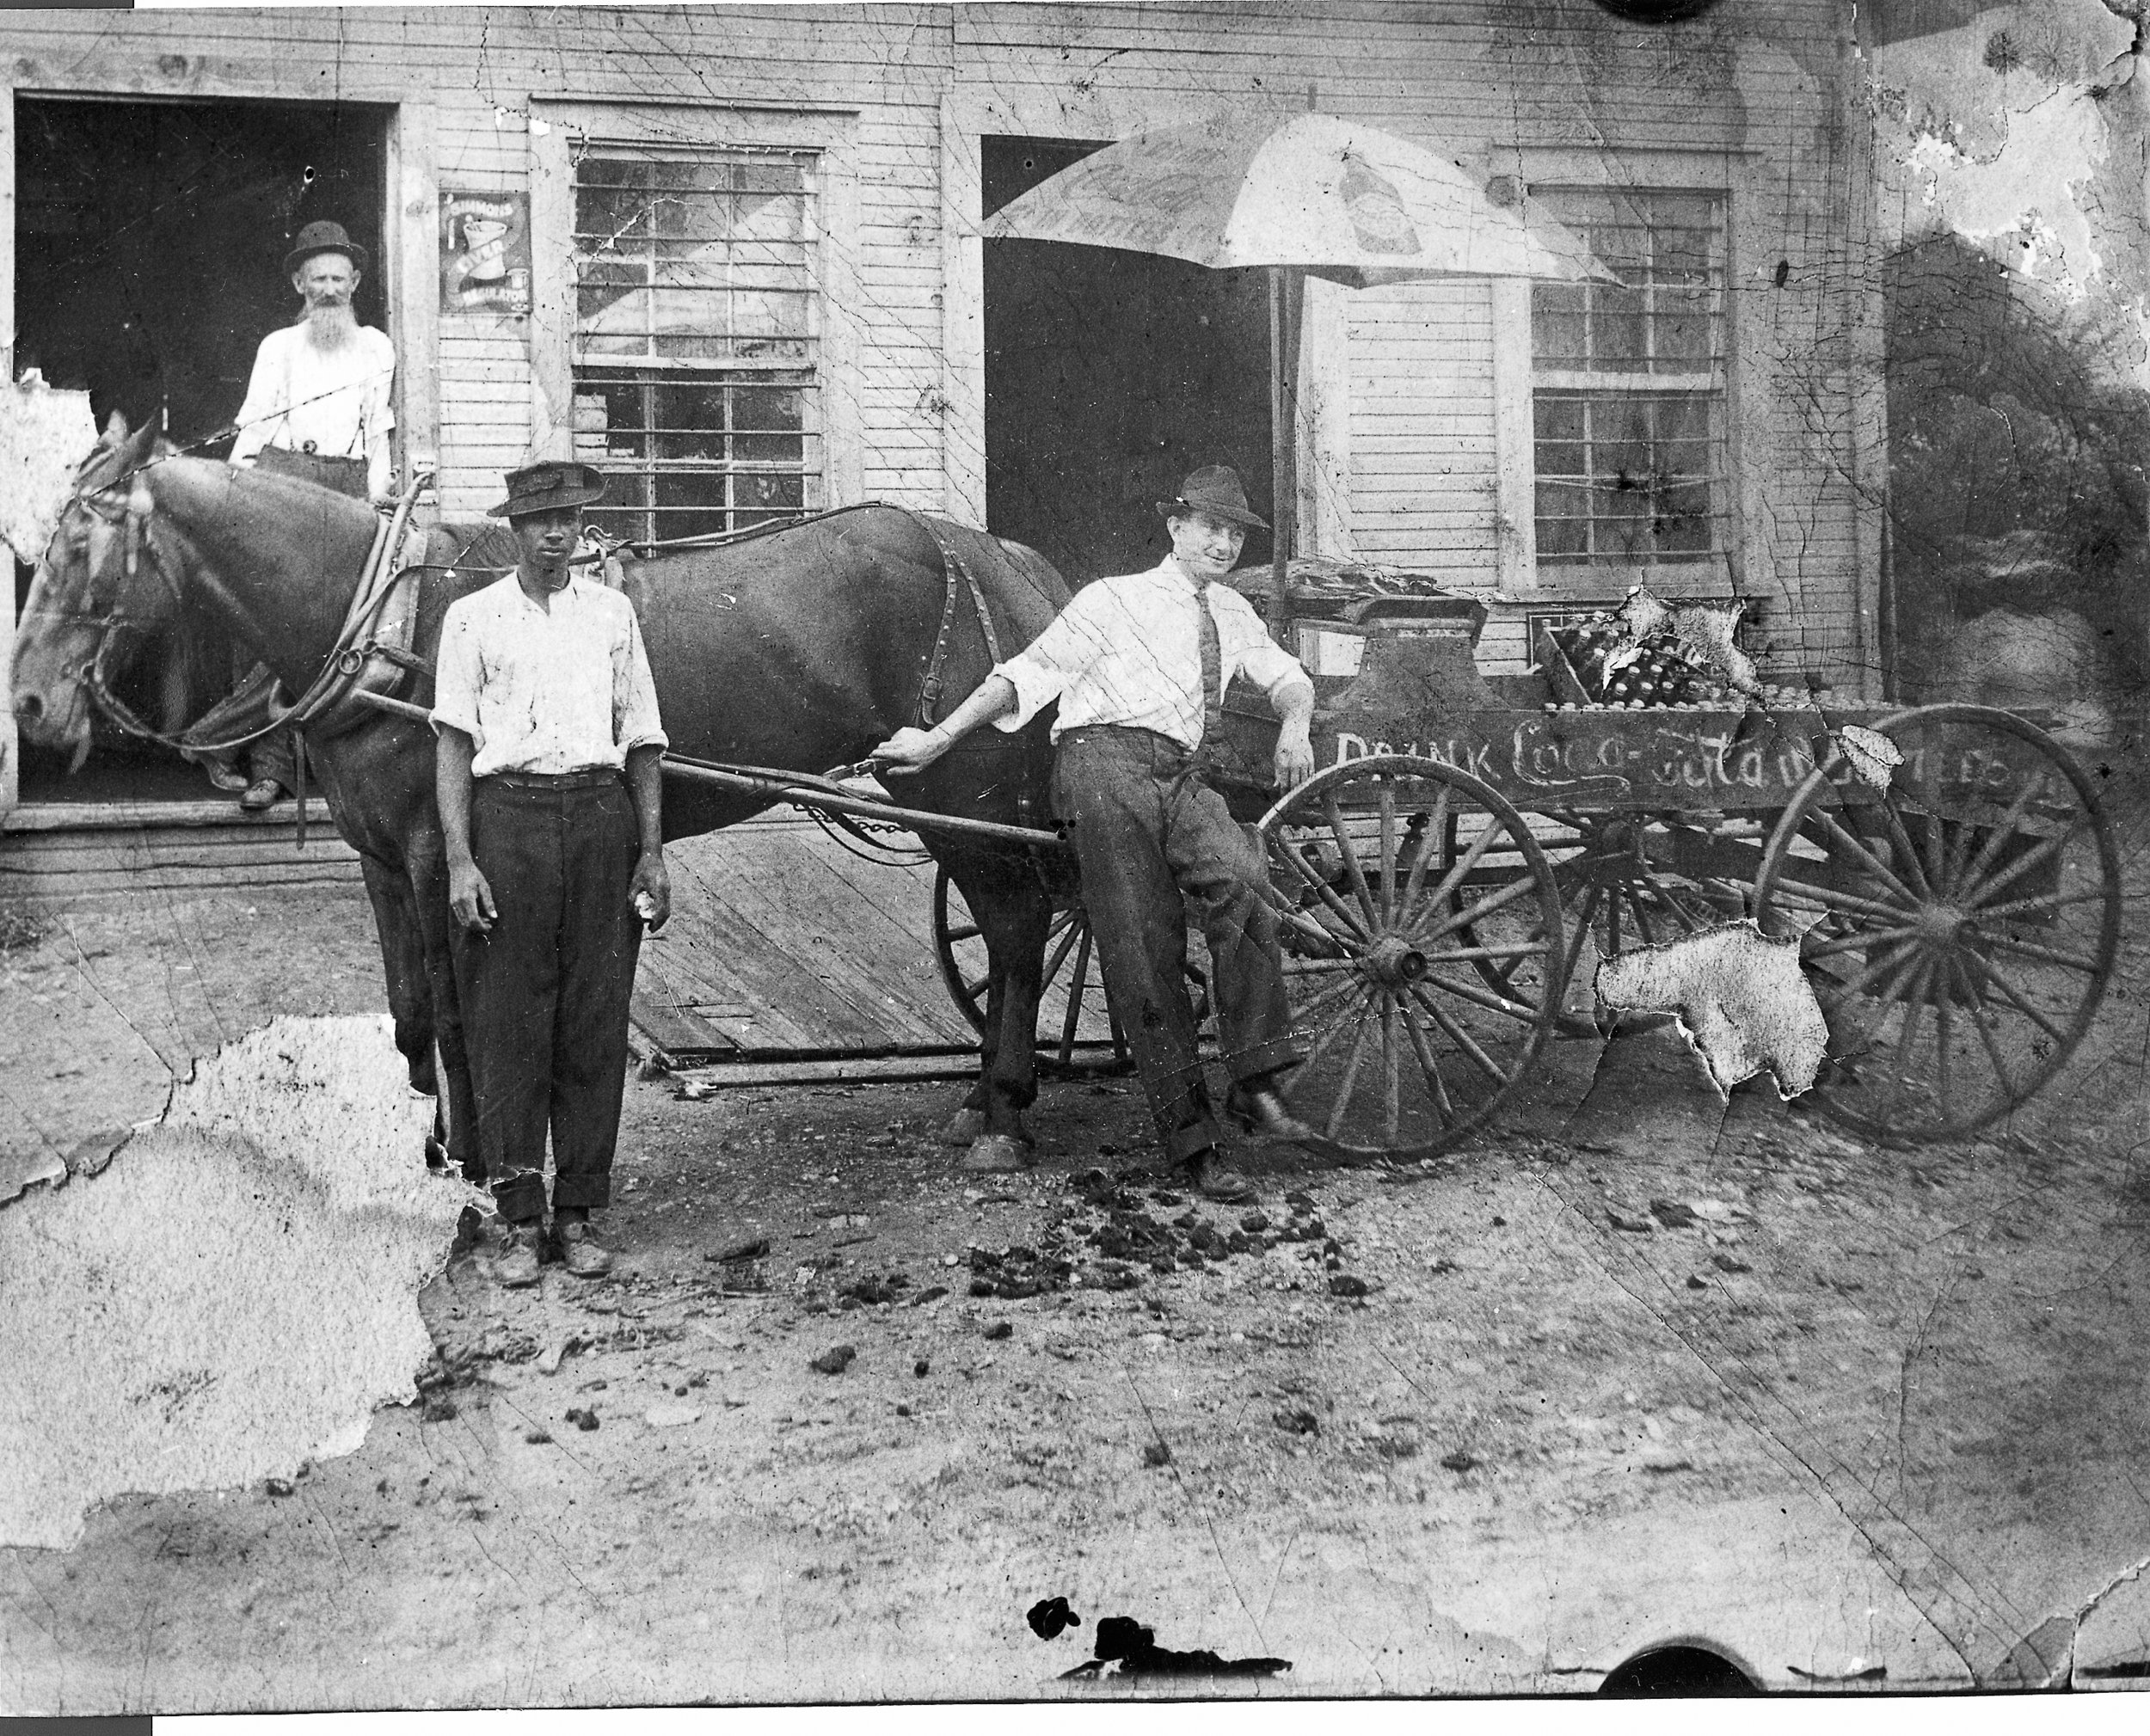 Early 20th century Coca-Cola deliveries from the Mauldin's Rock Hill Coca-Cola plant. Courtesy of the Mauldin Family Collection 2014